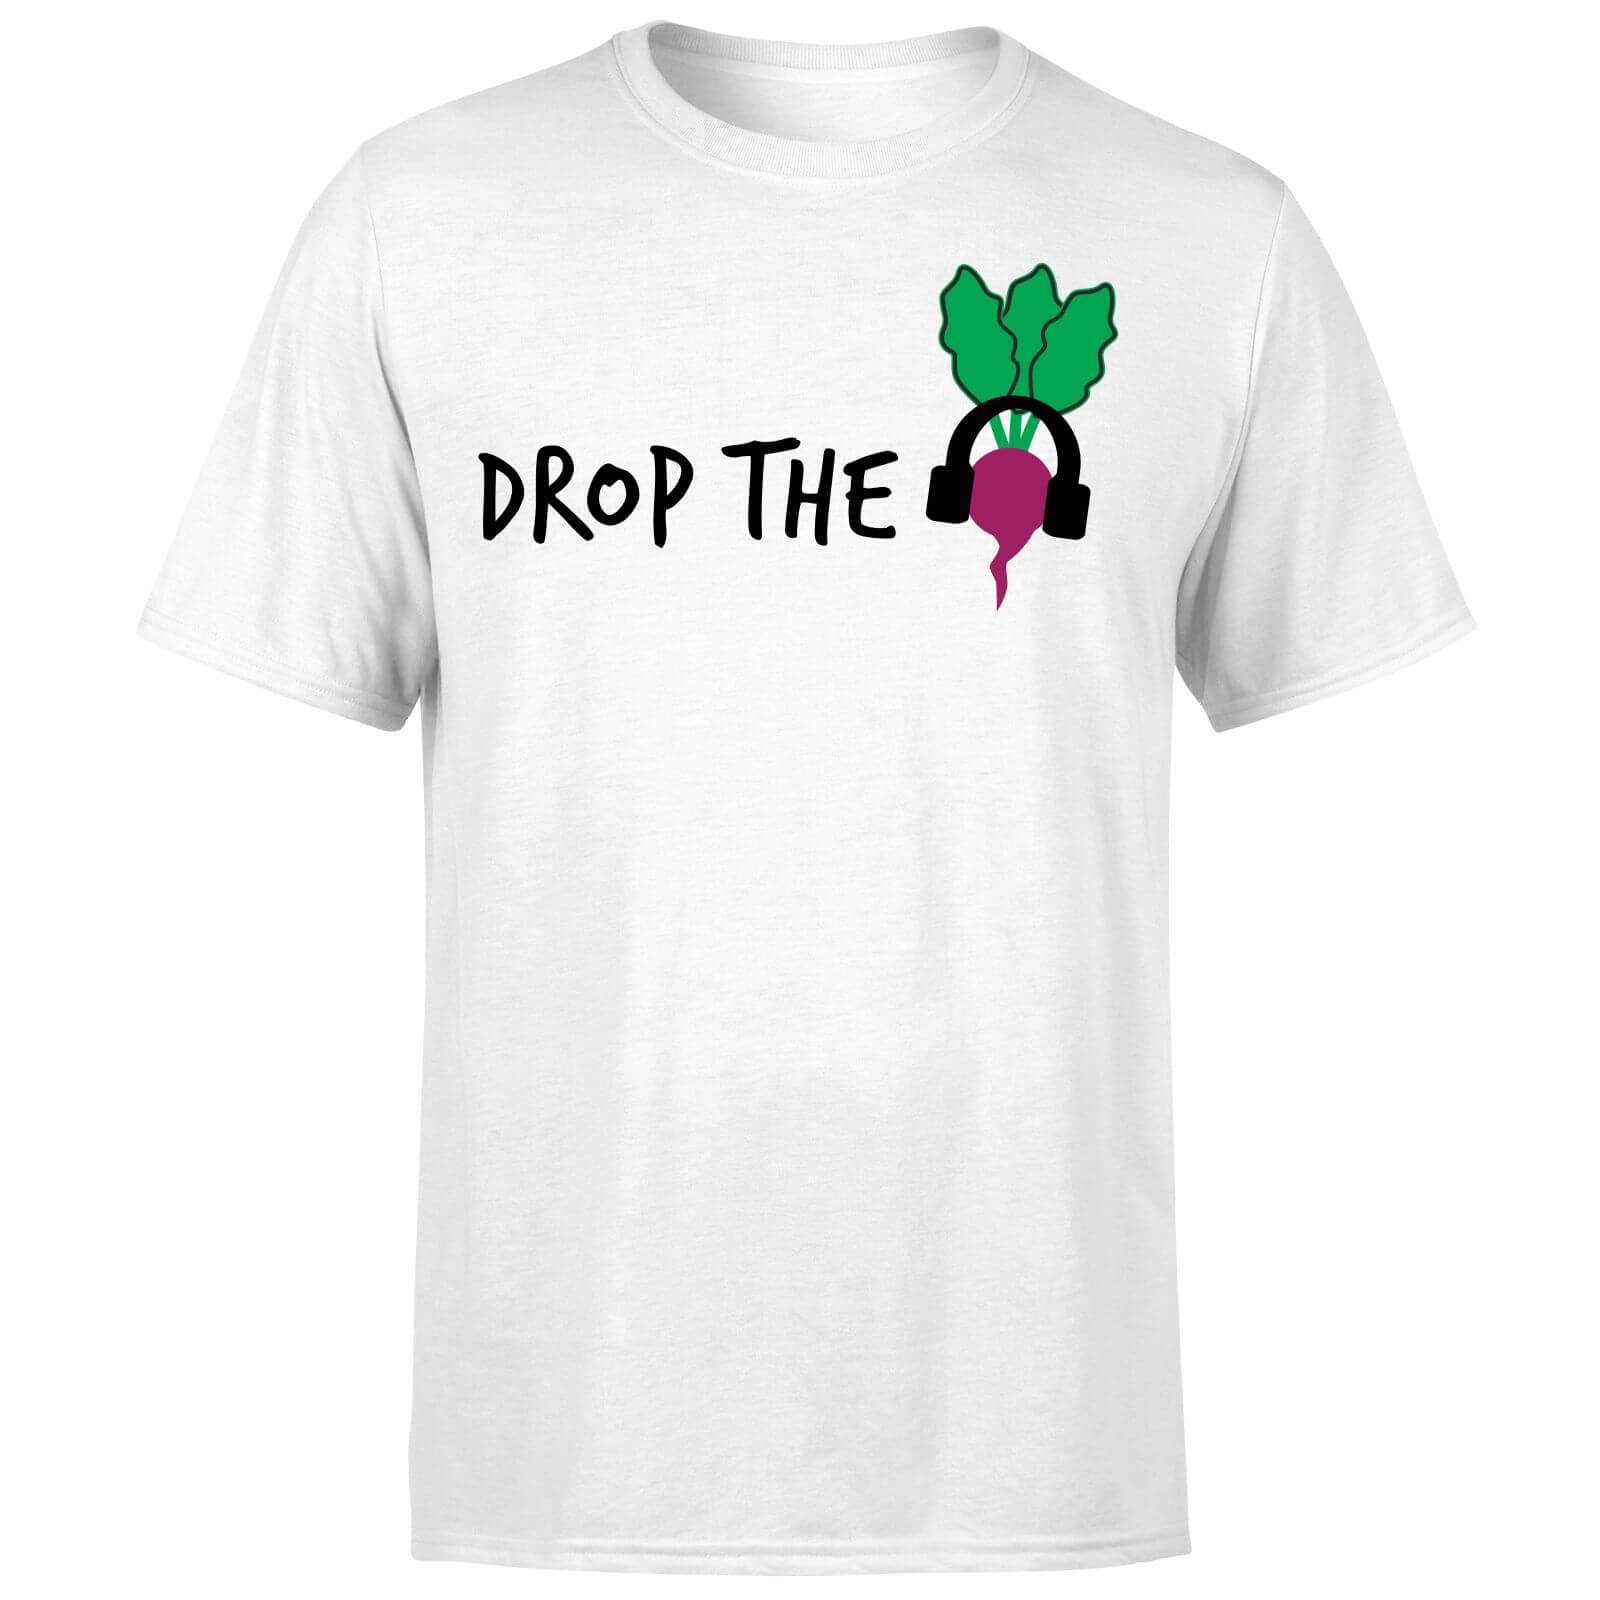 Drop the Beet T-Shirt - White